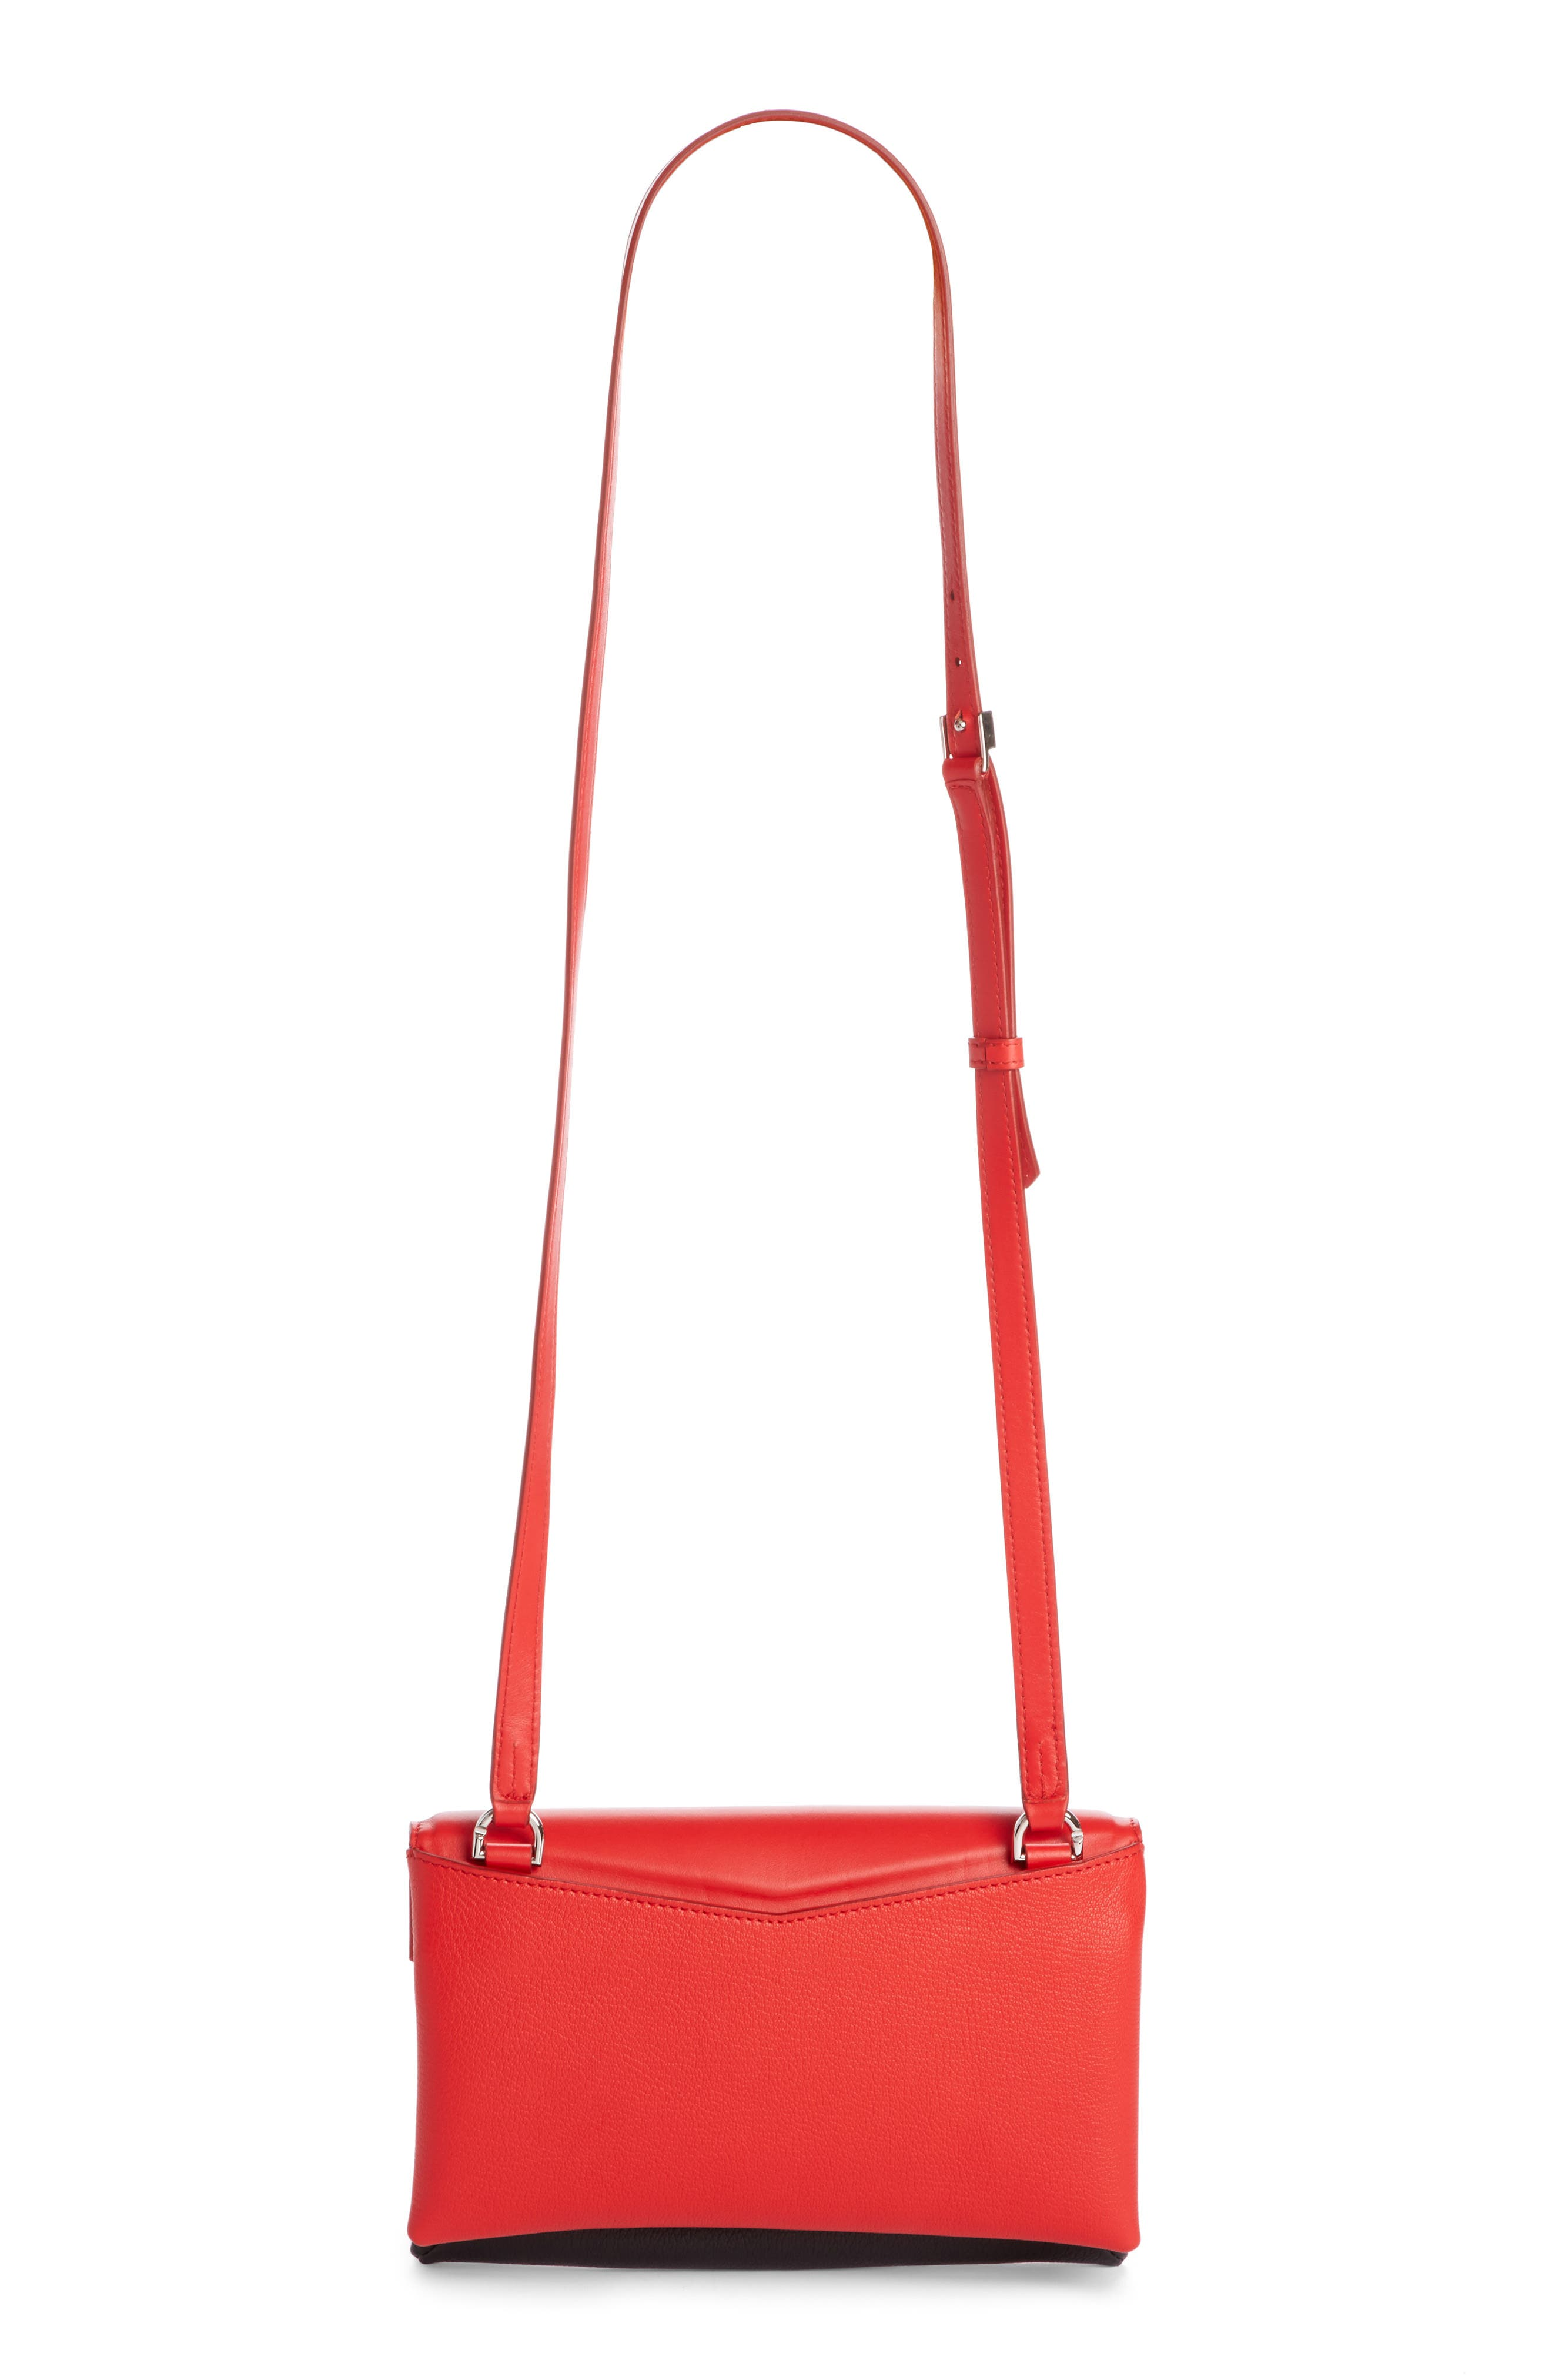 Duetto Tricolor Leather Flap Crossbody Bag,                             Alternate thumbnail 2, color,                             Red/ Black